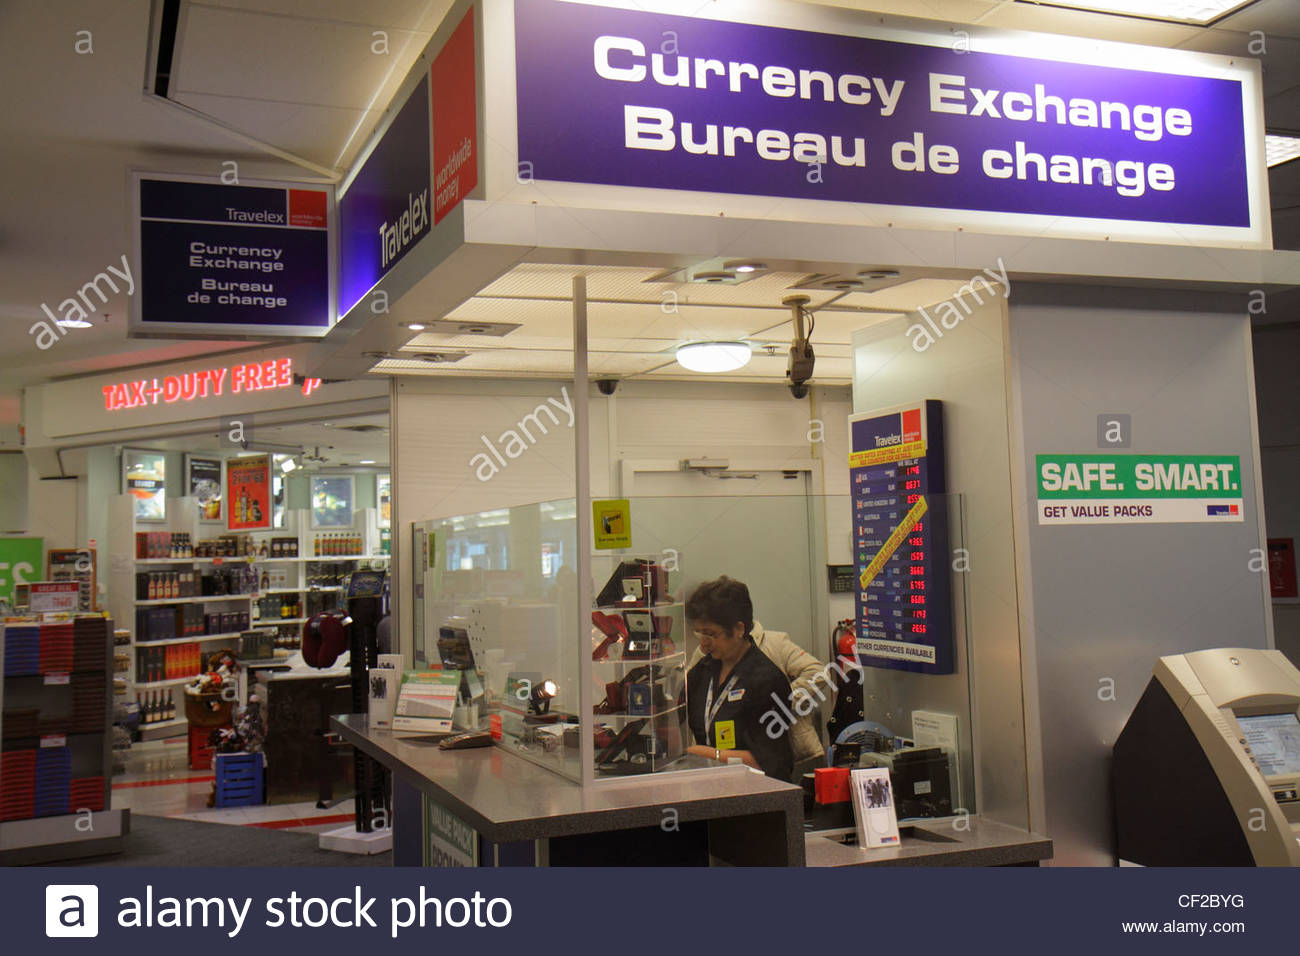 The exchange bureau maison de change fabulous the - Post office bureau de change exchange rates ...